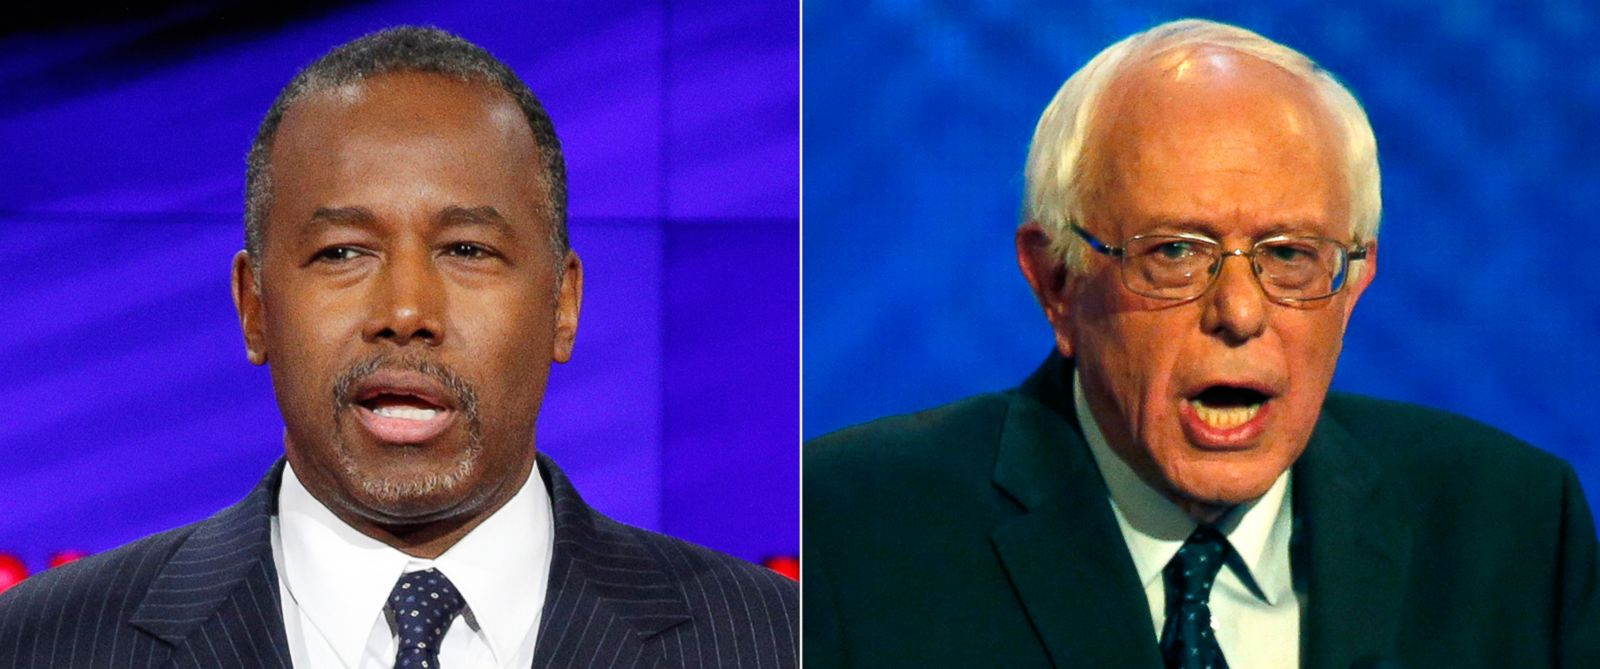 PHOTO: (L-R) Ben Carson speaks in Las Vegas, Dec. 15, 2015 and Bernie Sanders speaks in Manchester, N.H., Dec. 19, 2015.